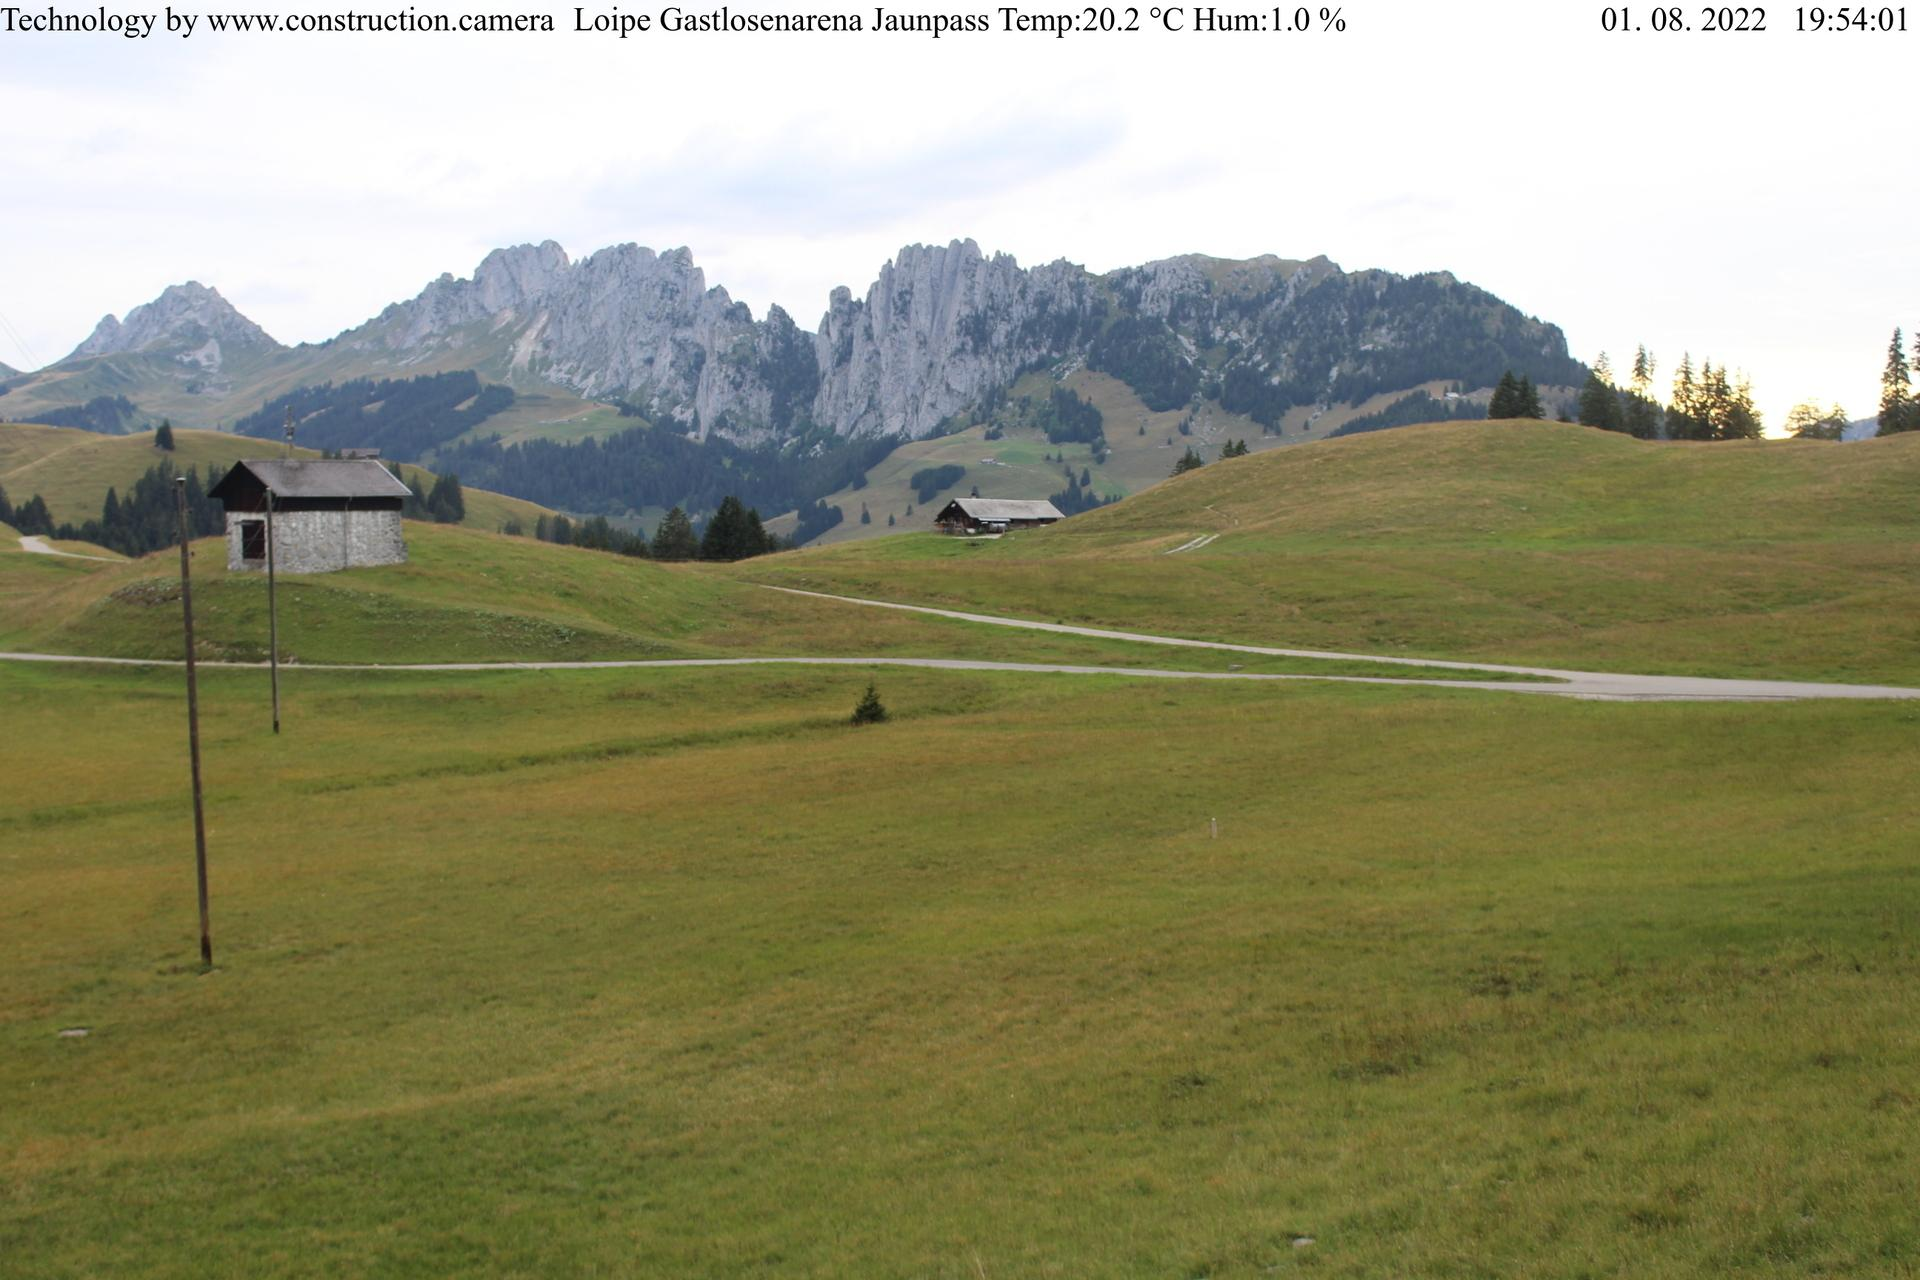 Preview Wetter Webcam Jaunpass Gastlosen